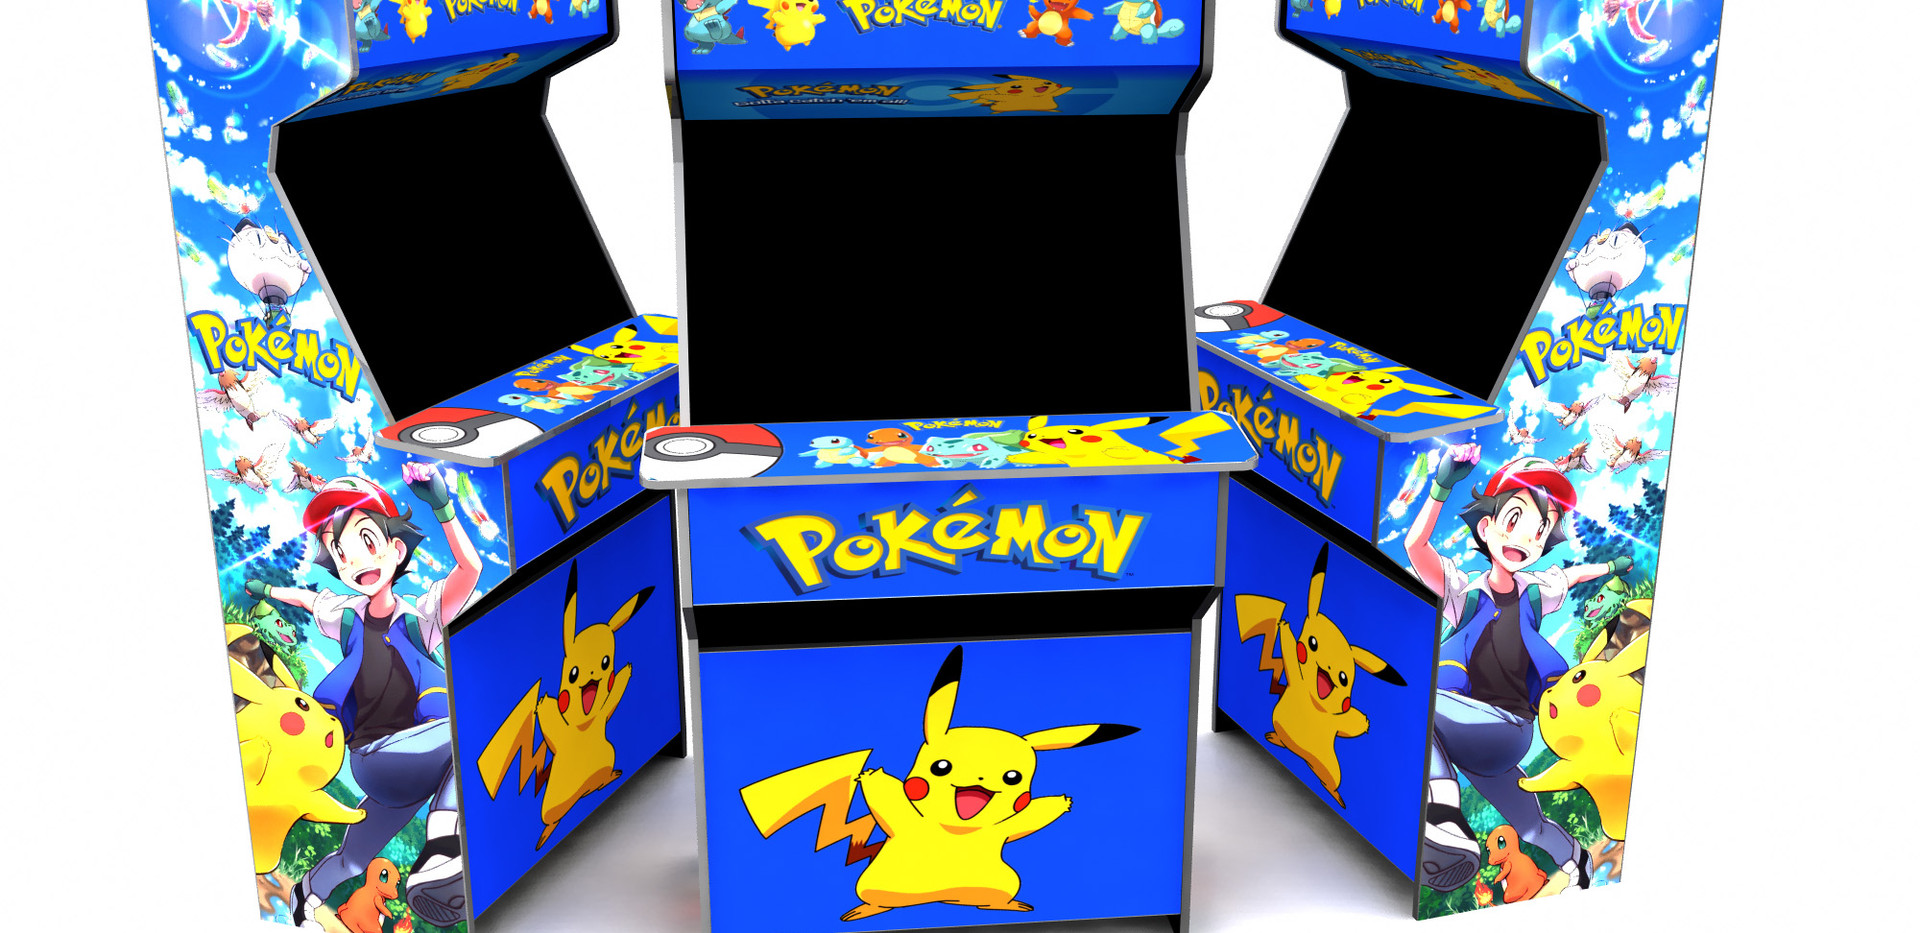 Pokemon Arcade